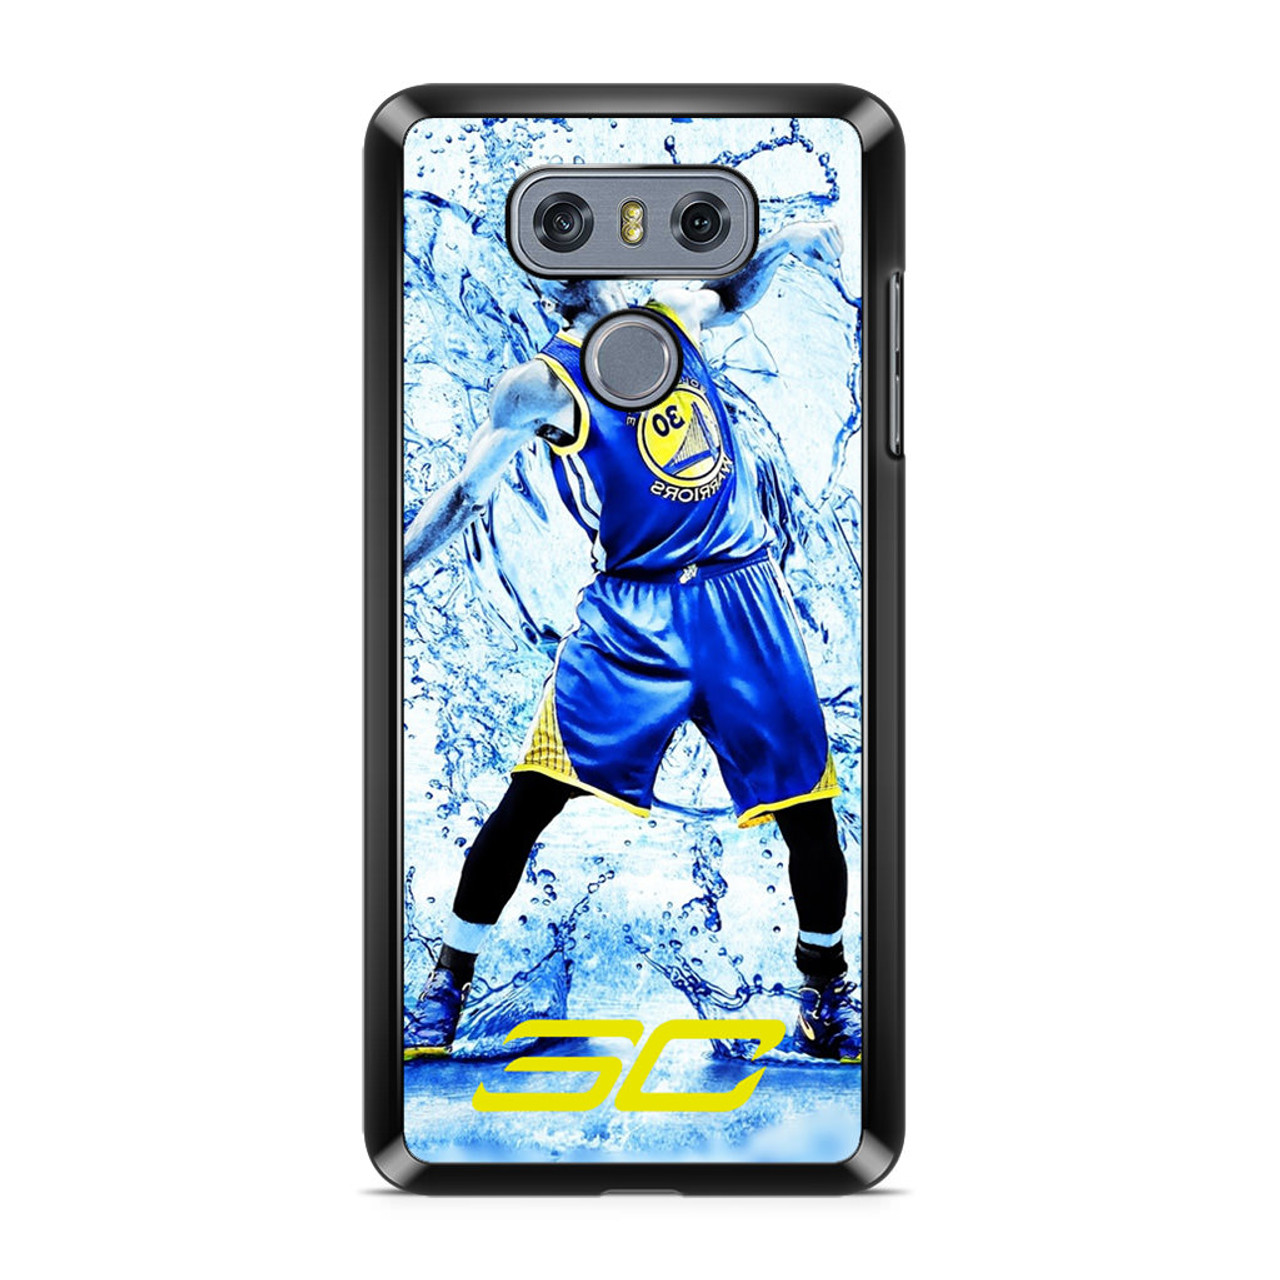 a4141072fc71 Stephen Curry Water LG G6 Case - CASESHUNTER